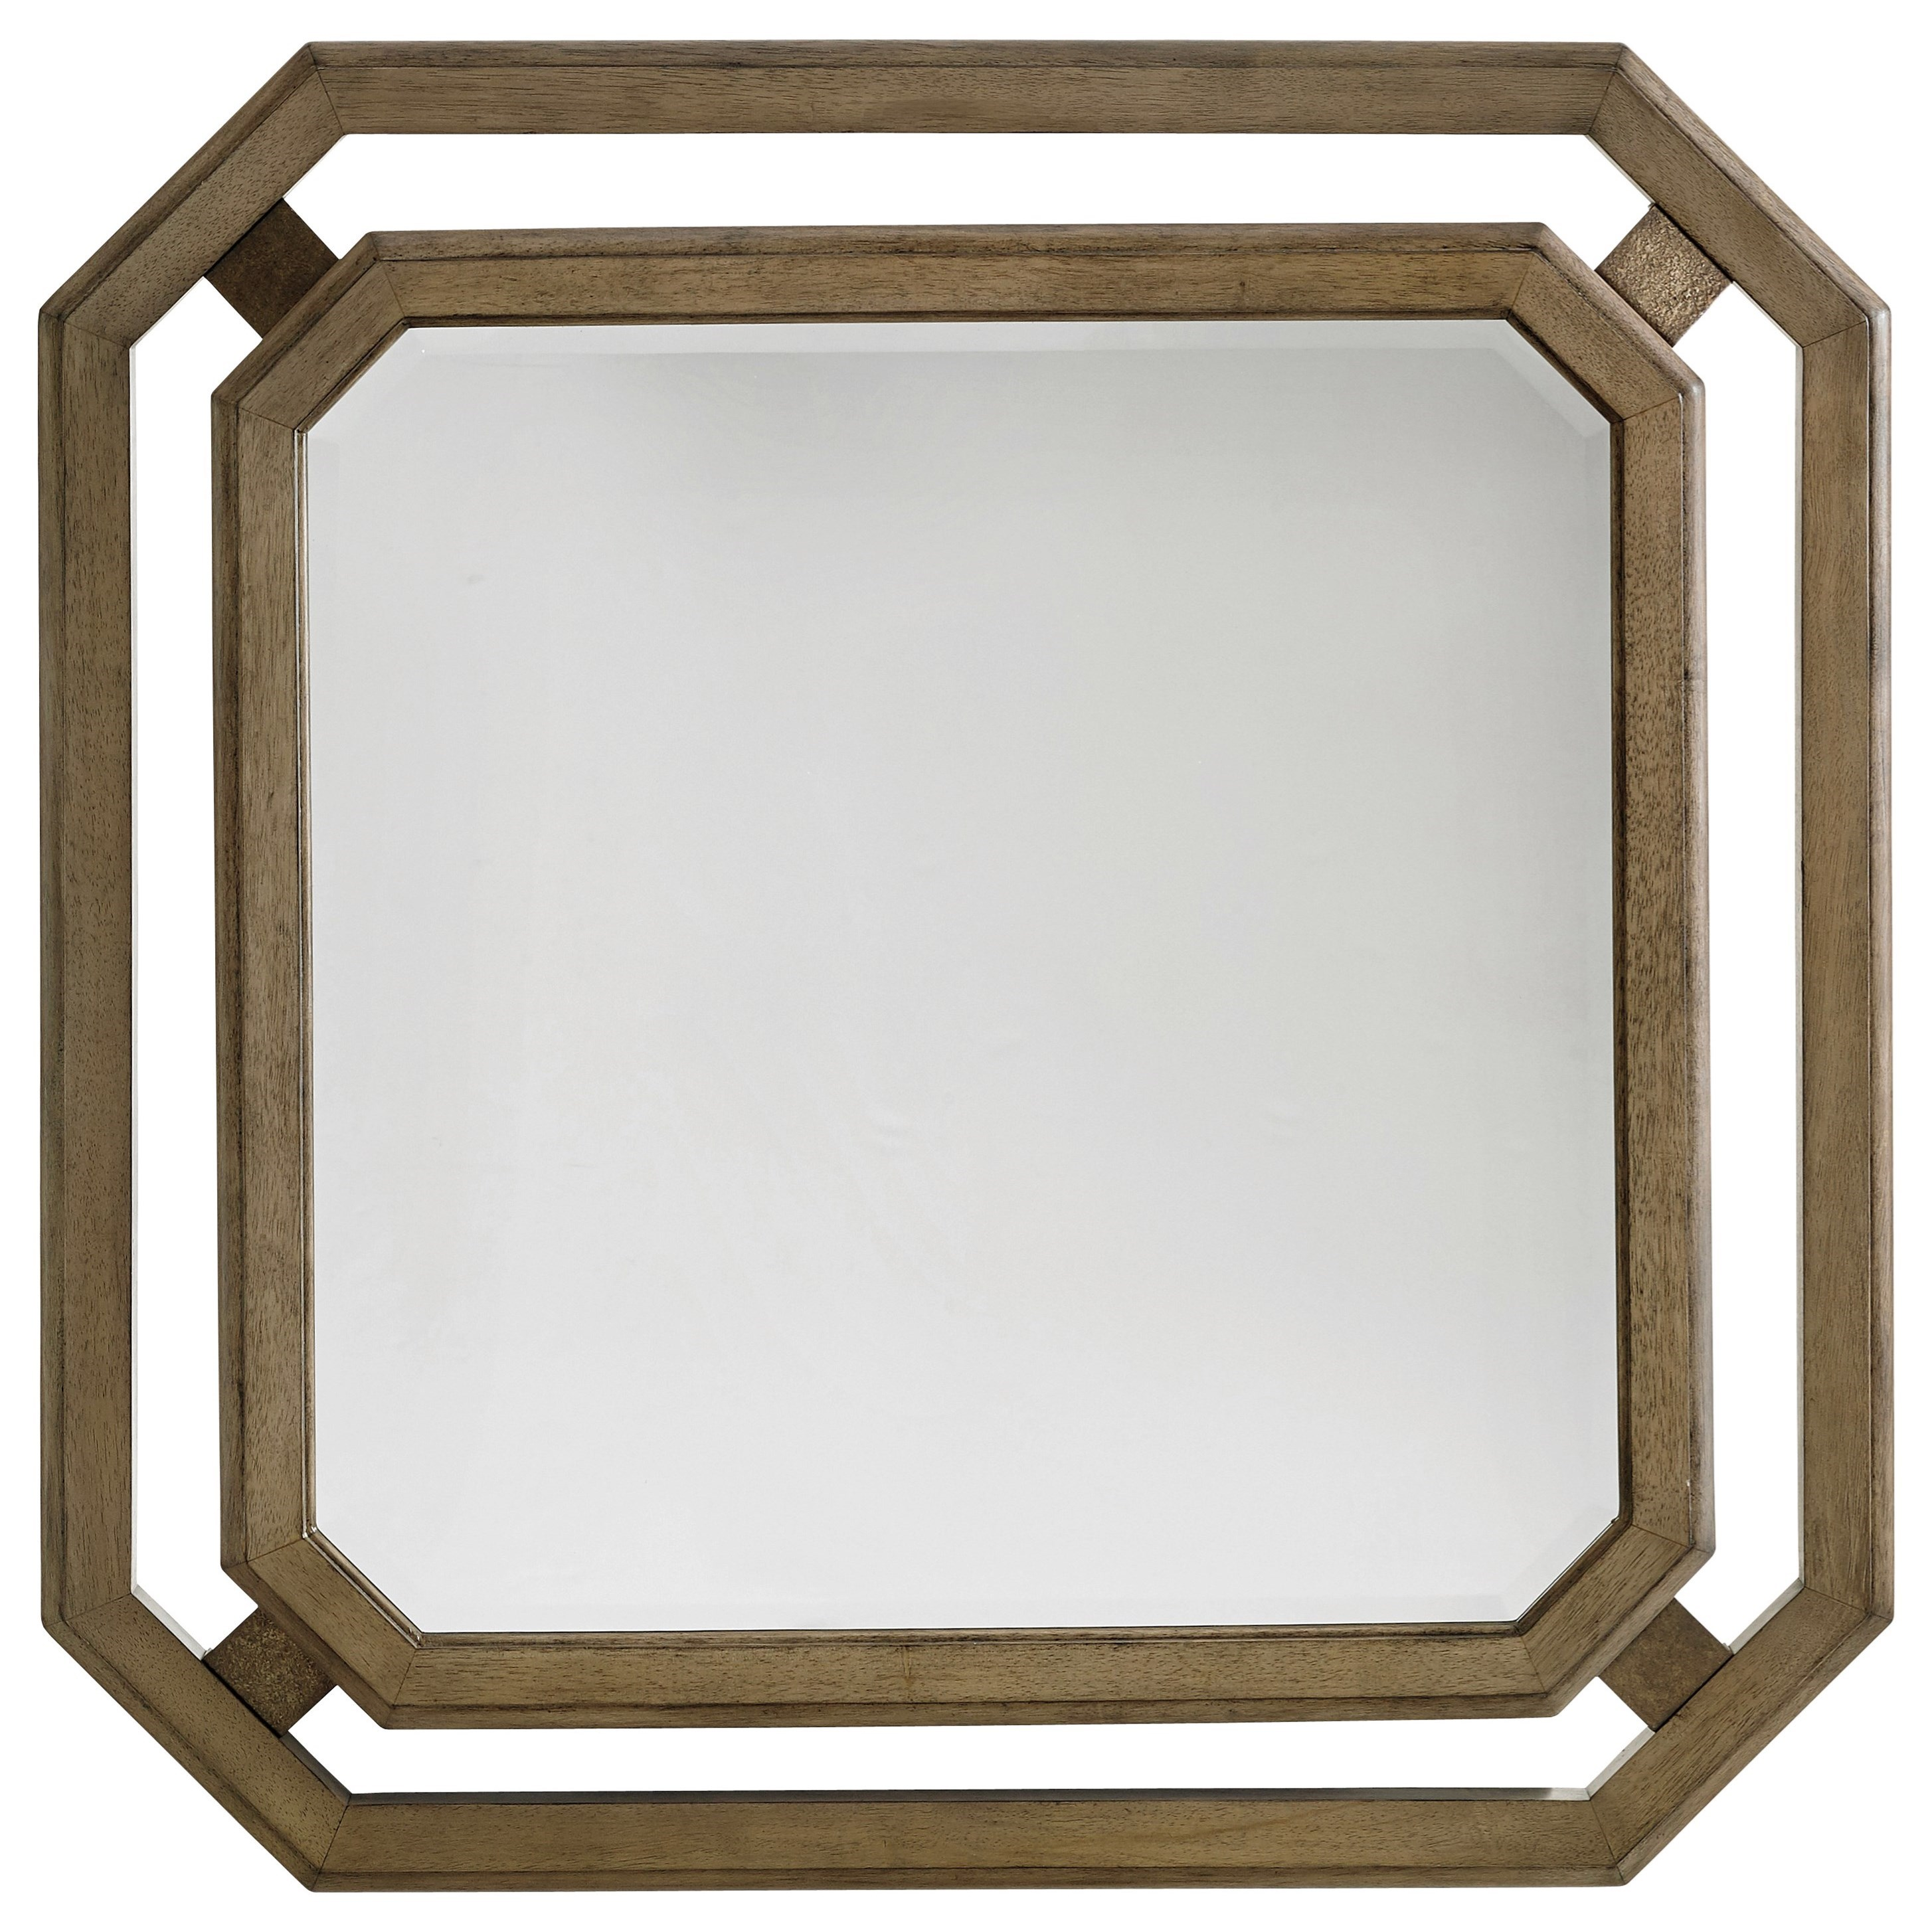 Tommy Bahama Home Cypress Point Callan Square Mirror - Item Number: 561-204